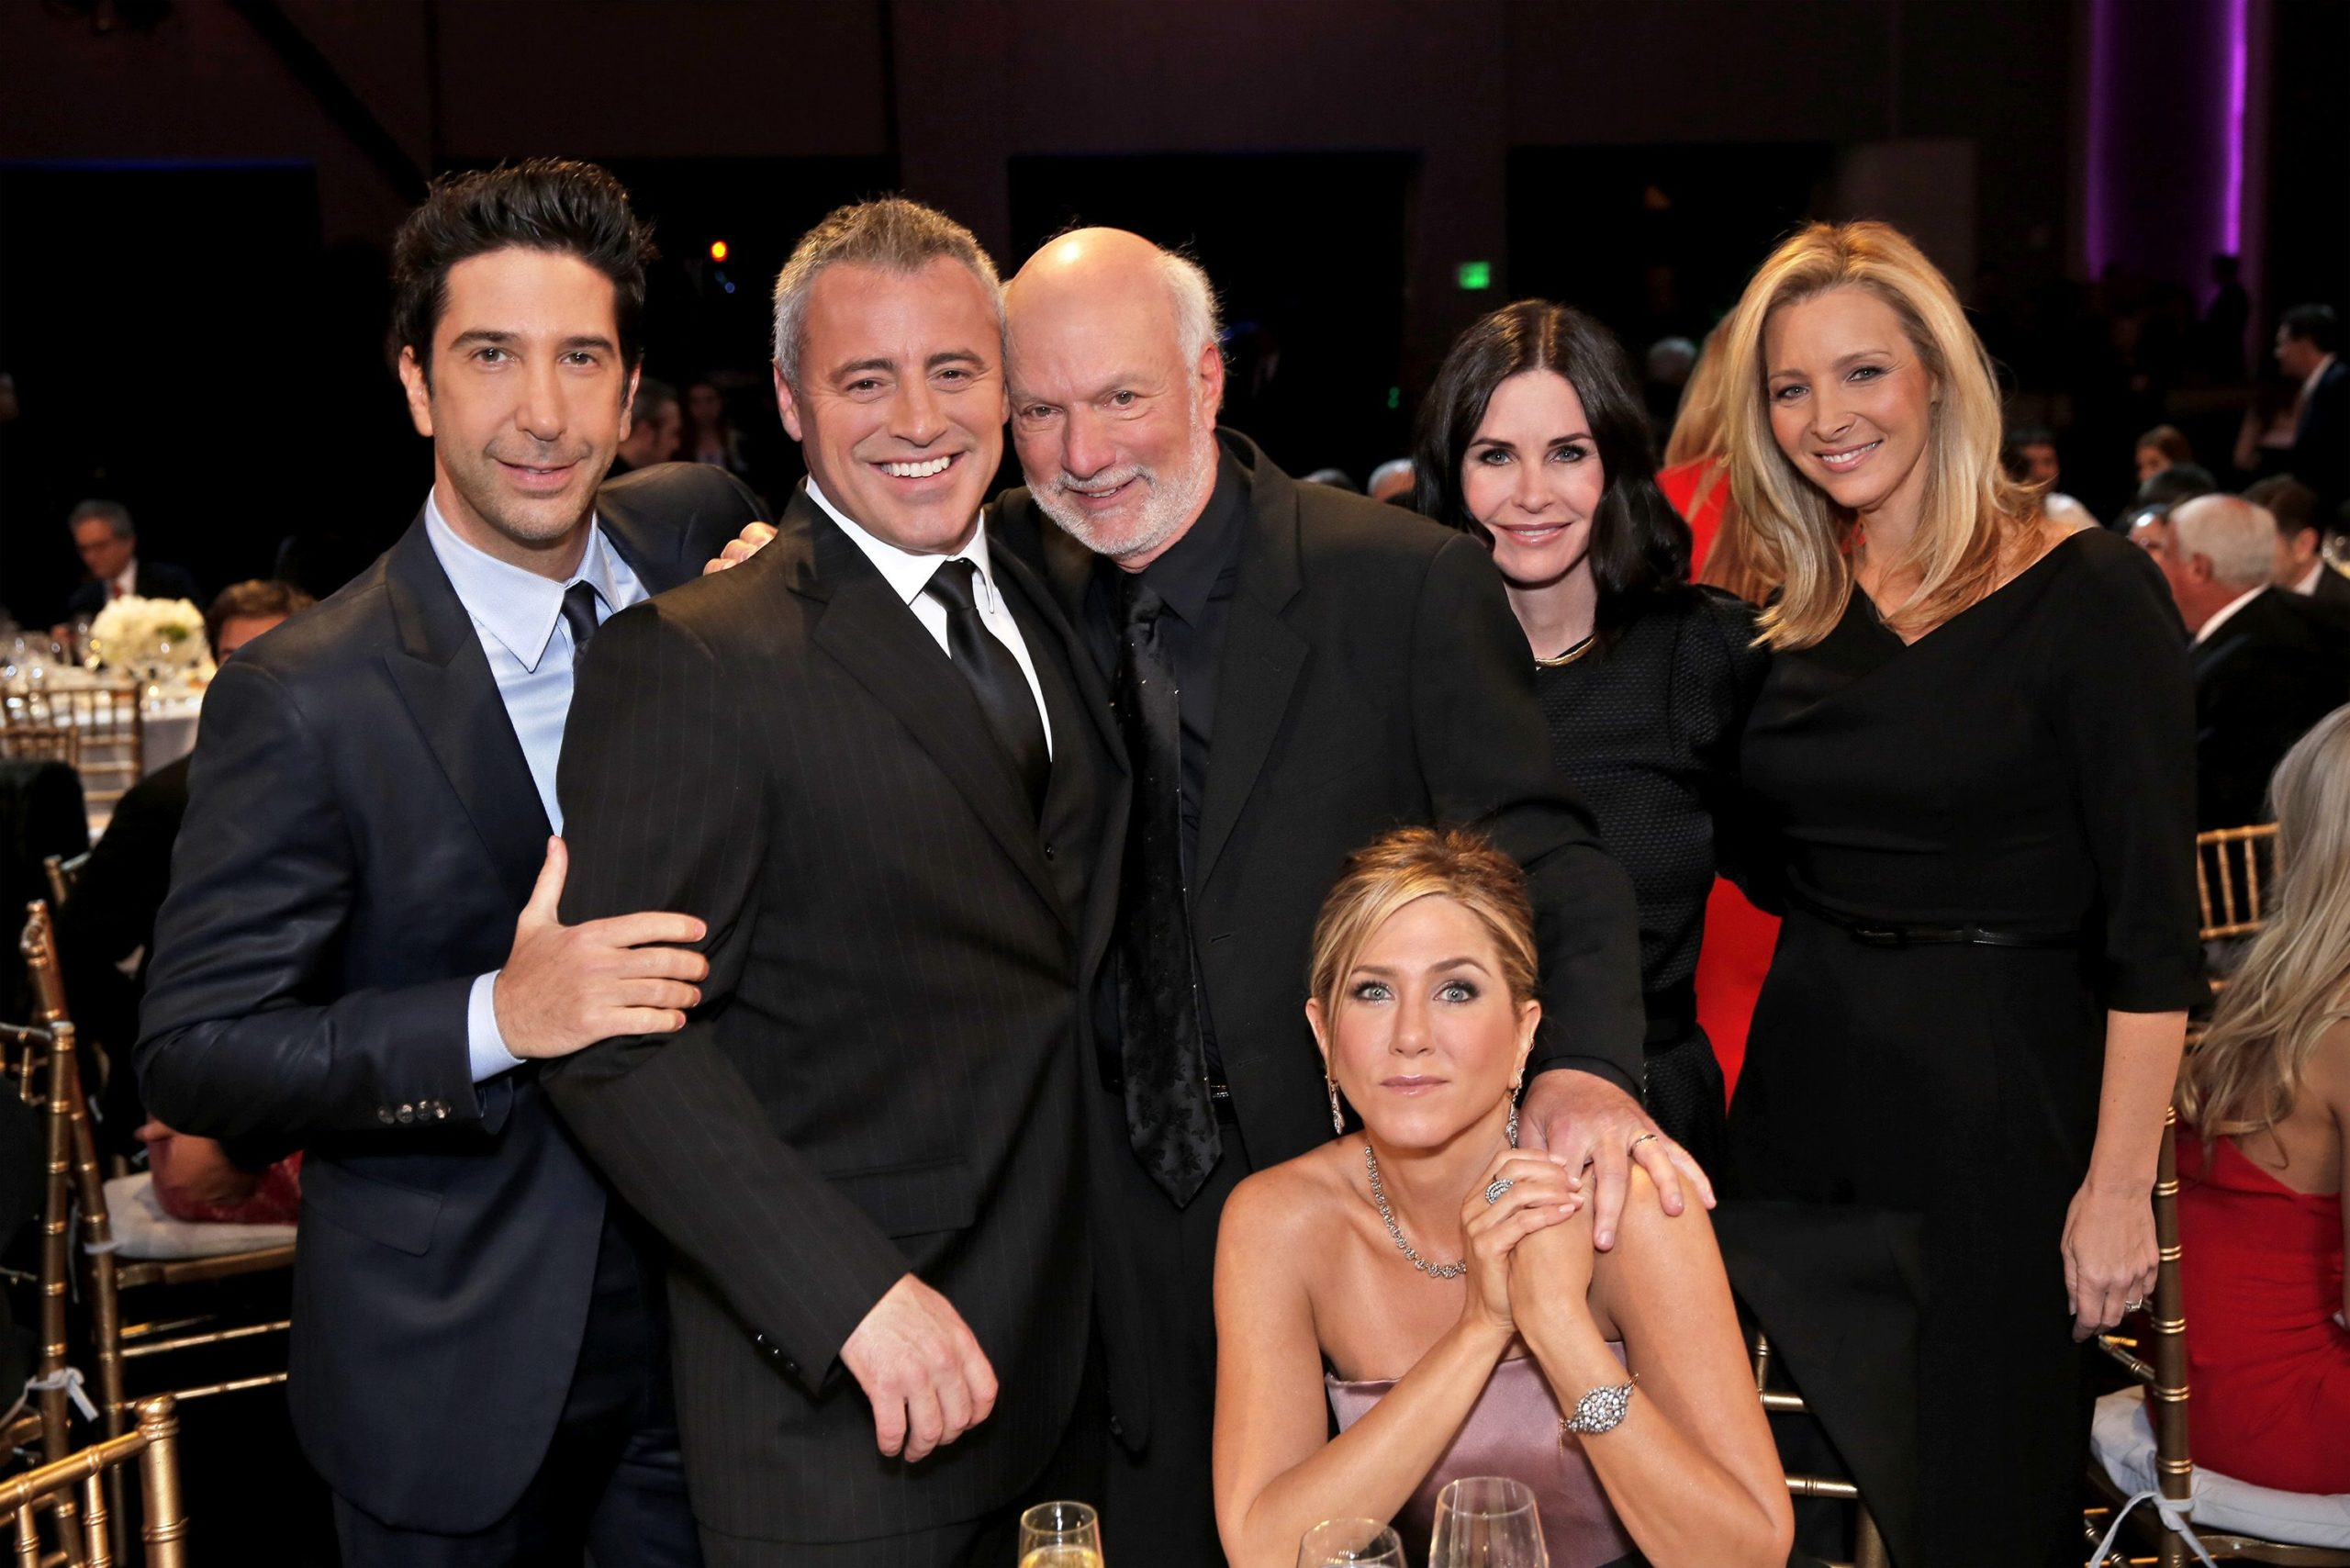 Friends Reunion Special Delay due to COVID-19 Lockdown